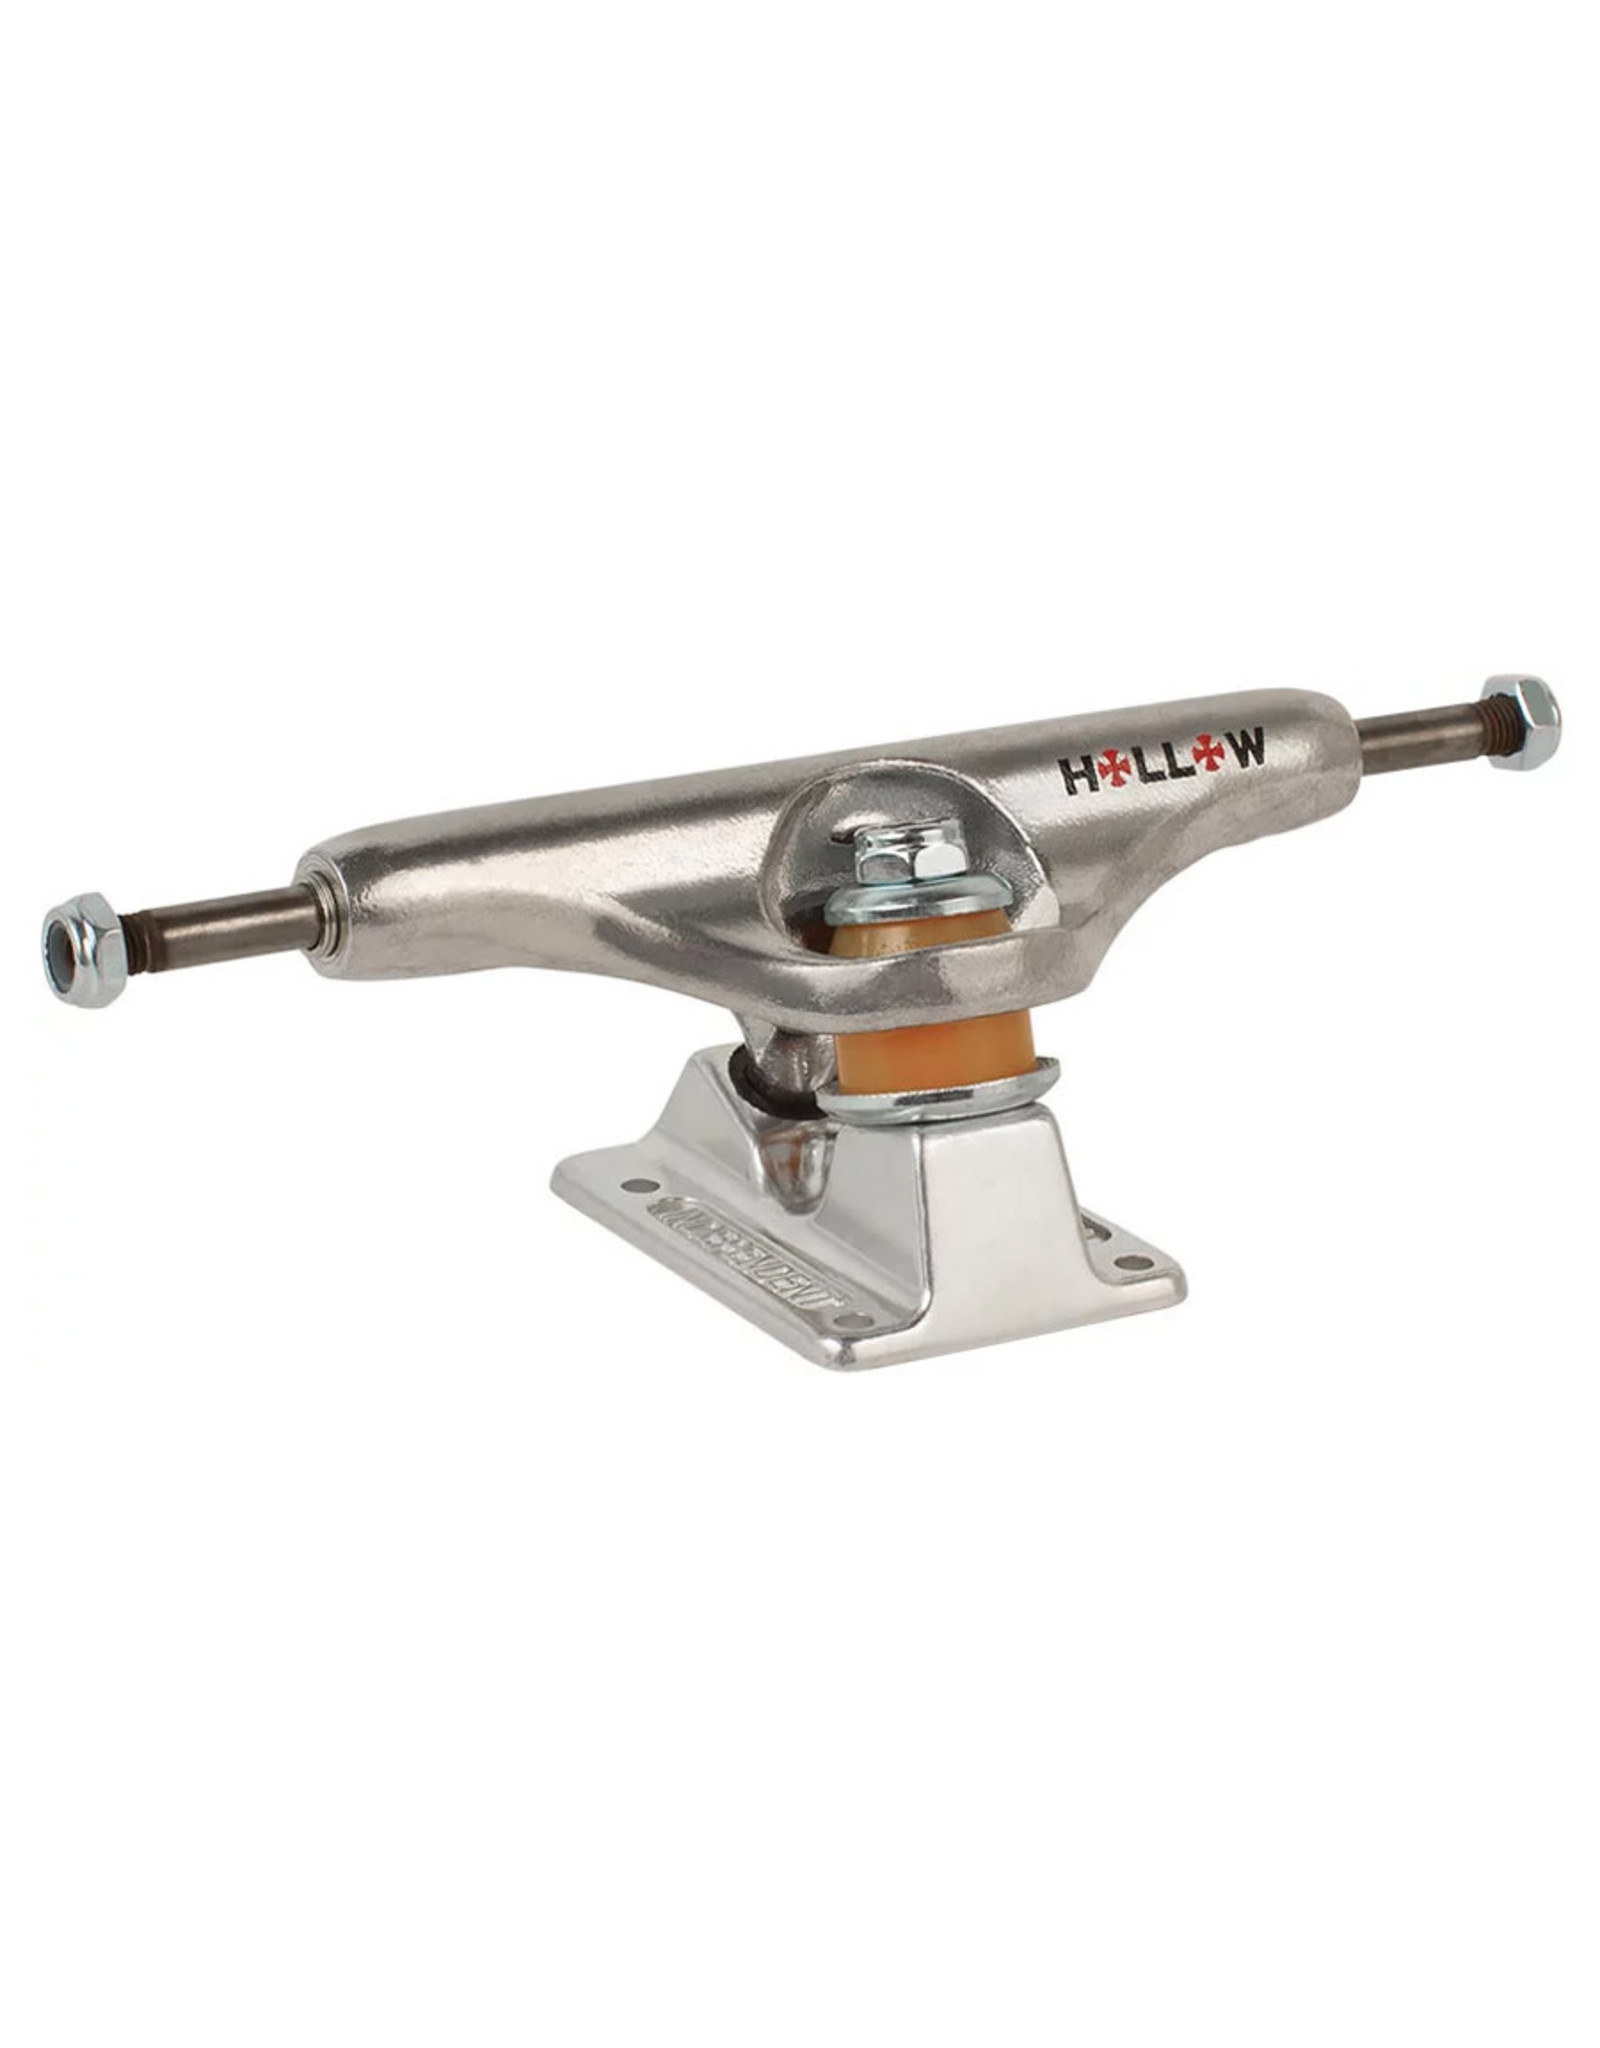 Independent Independent Trucks 149 Stage 11 Hollow Silver (Sold in Pair)